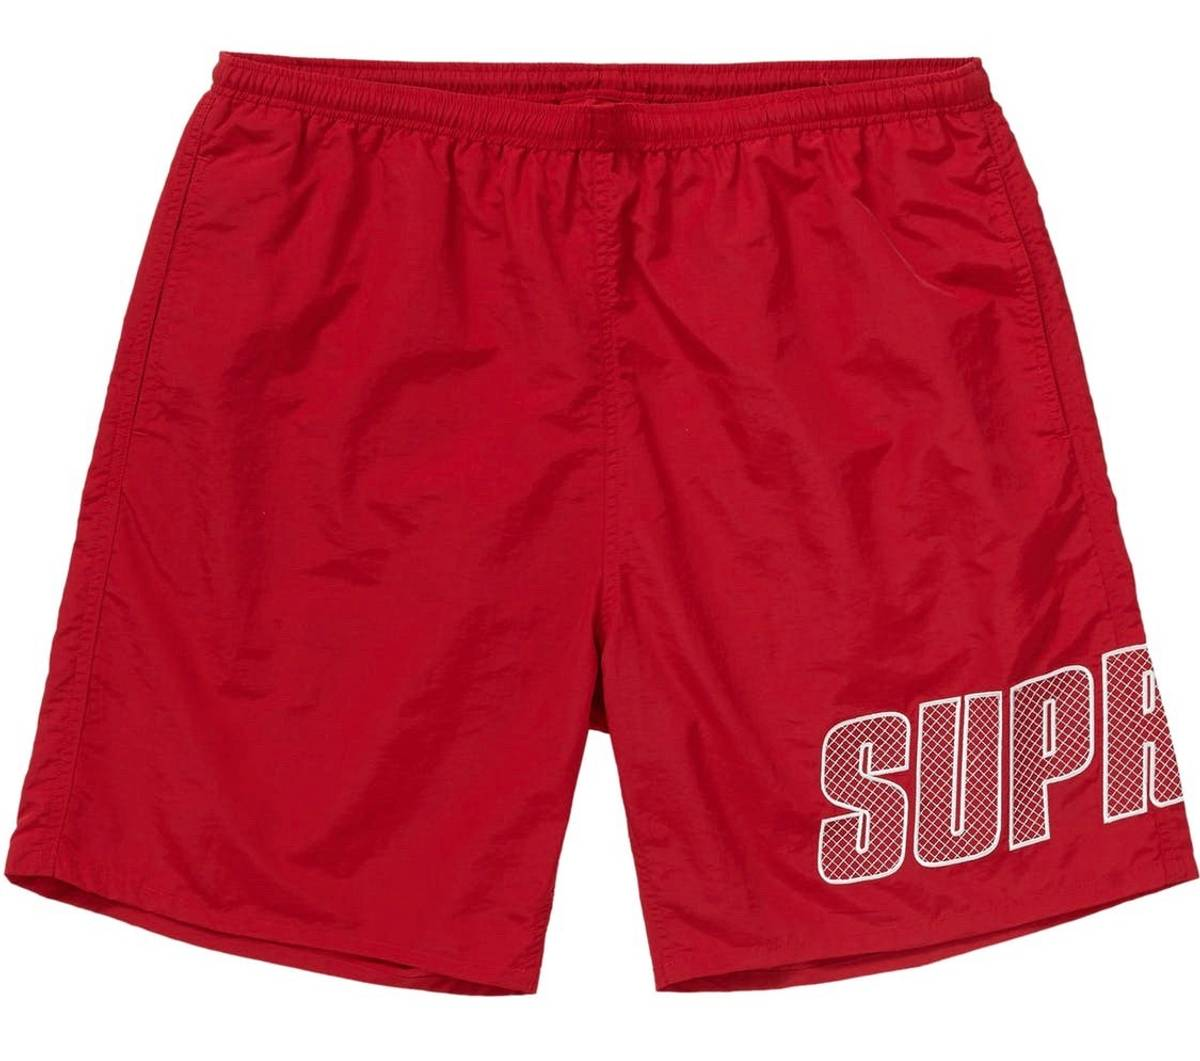 Supreme Supreme Logo Appliqué Water Short Swim Trunks Red | Grailed